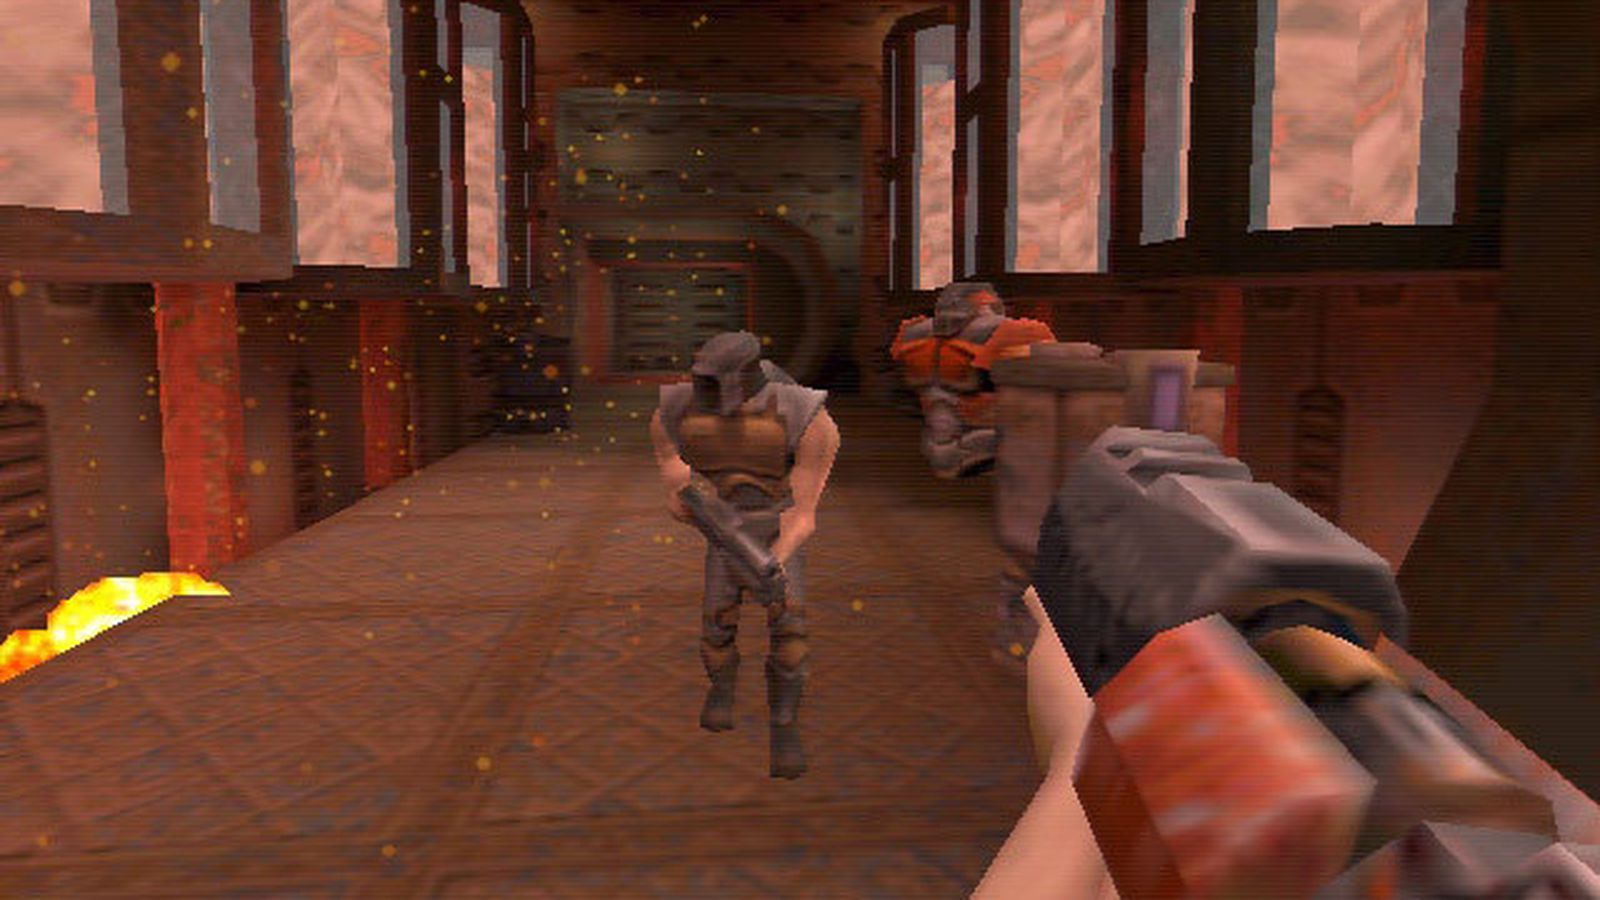 Porn mod for quake 4 sexual tube